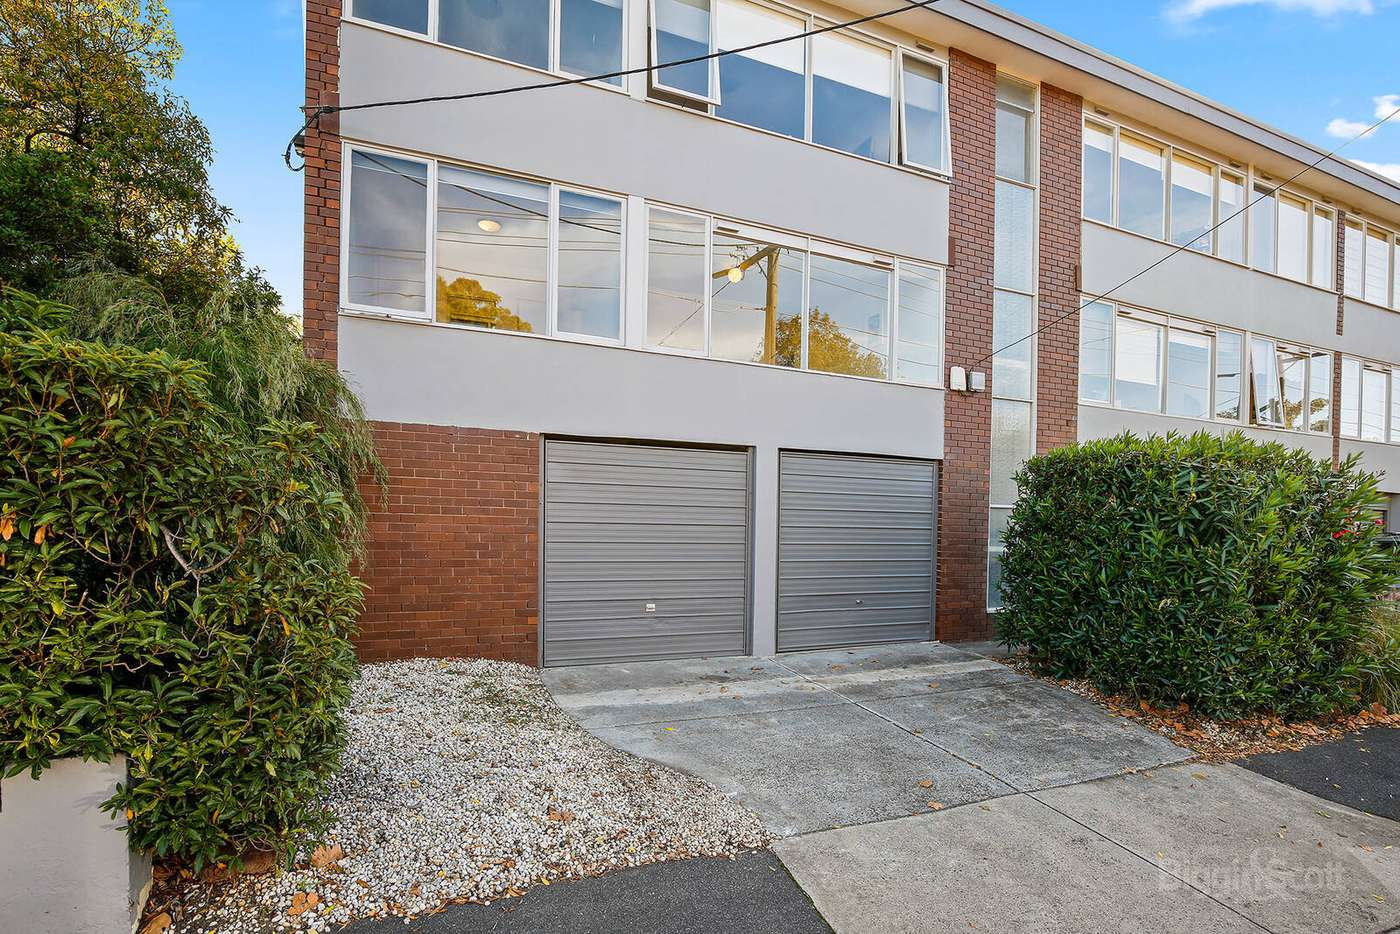 Main view of Homely apartment listing, 1/1 Hotham Grove, Ripponlea VIC 3185